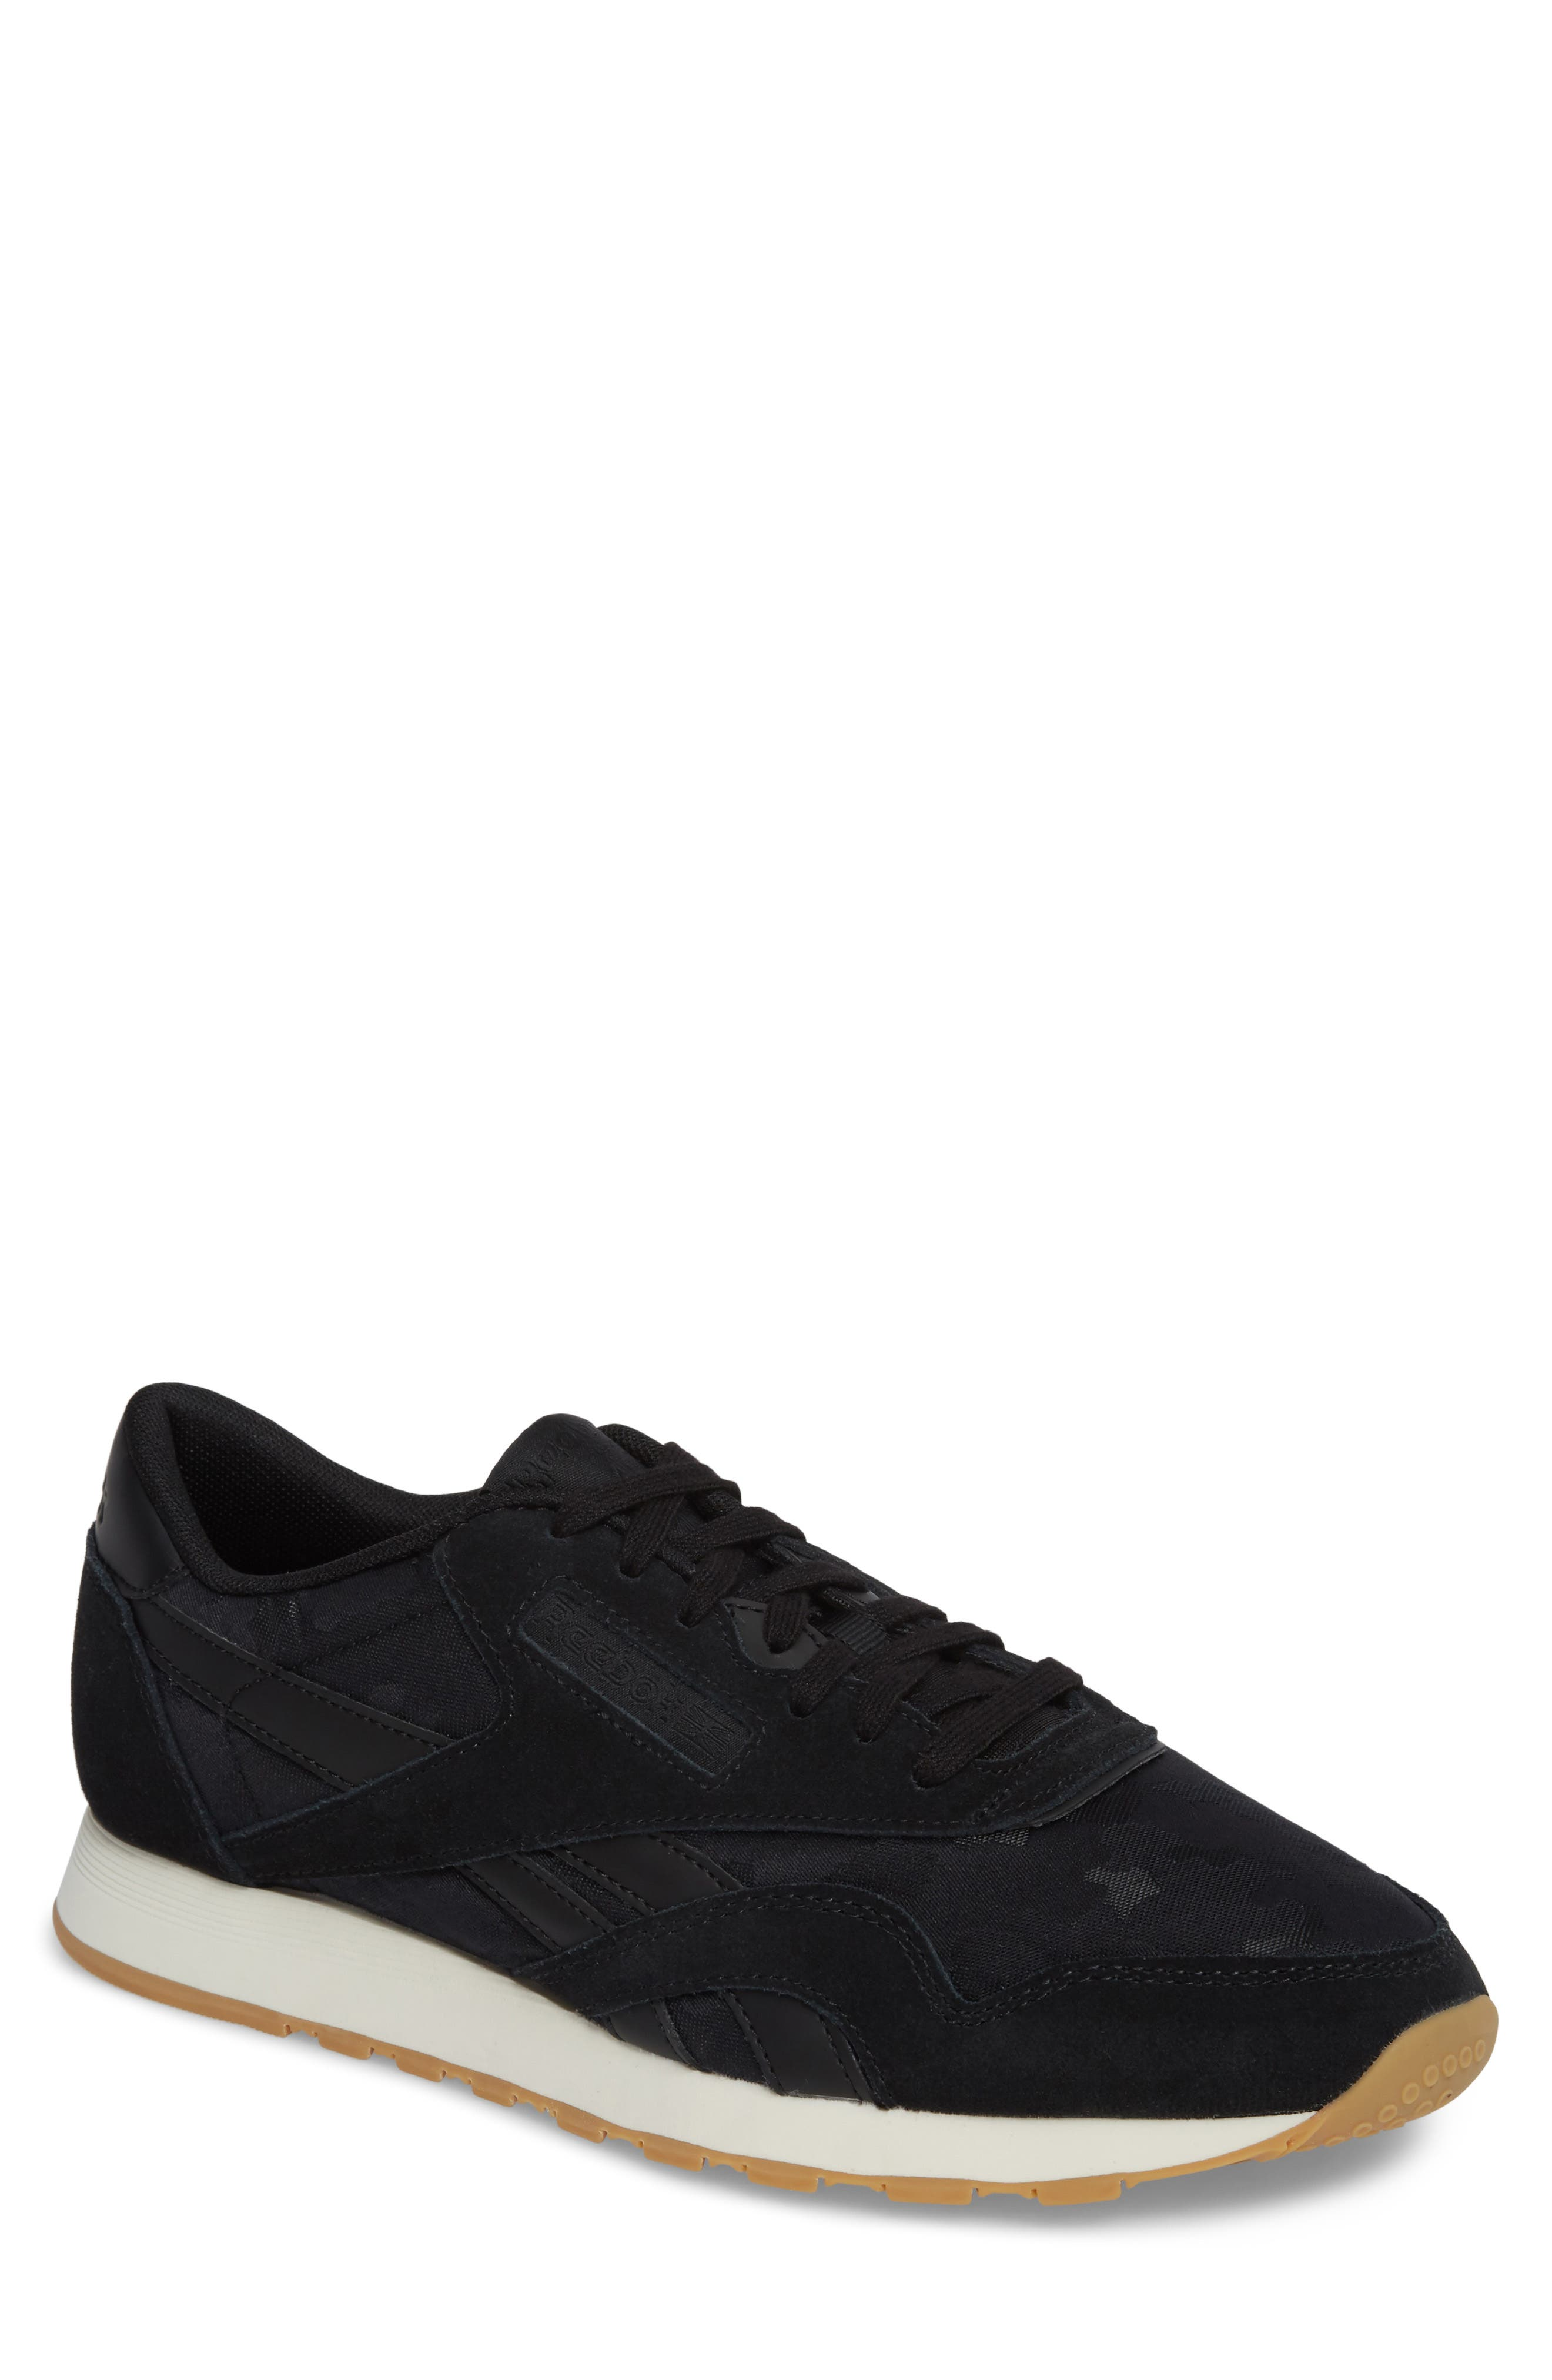 Reebok Classic Leather Nylon SG Sneaker (Men)